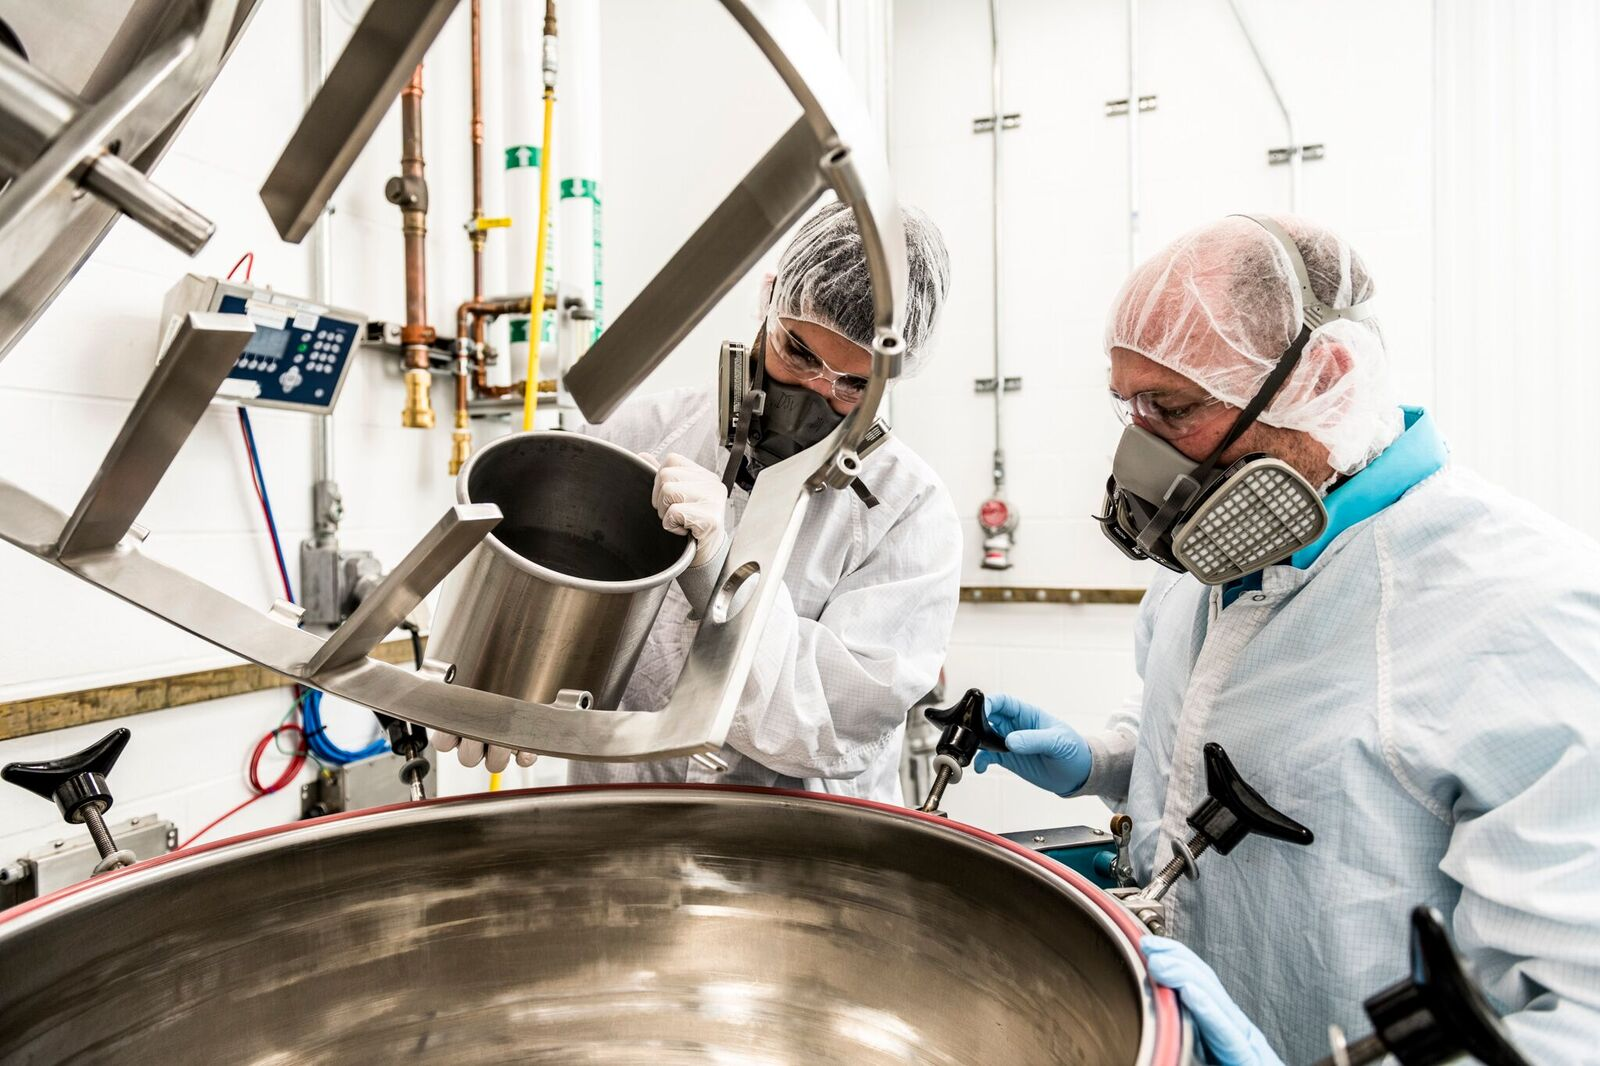 Tapemark employees conducting pharmaceutical mixing and blending